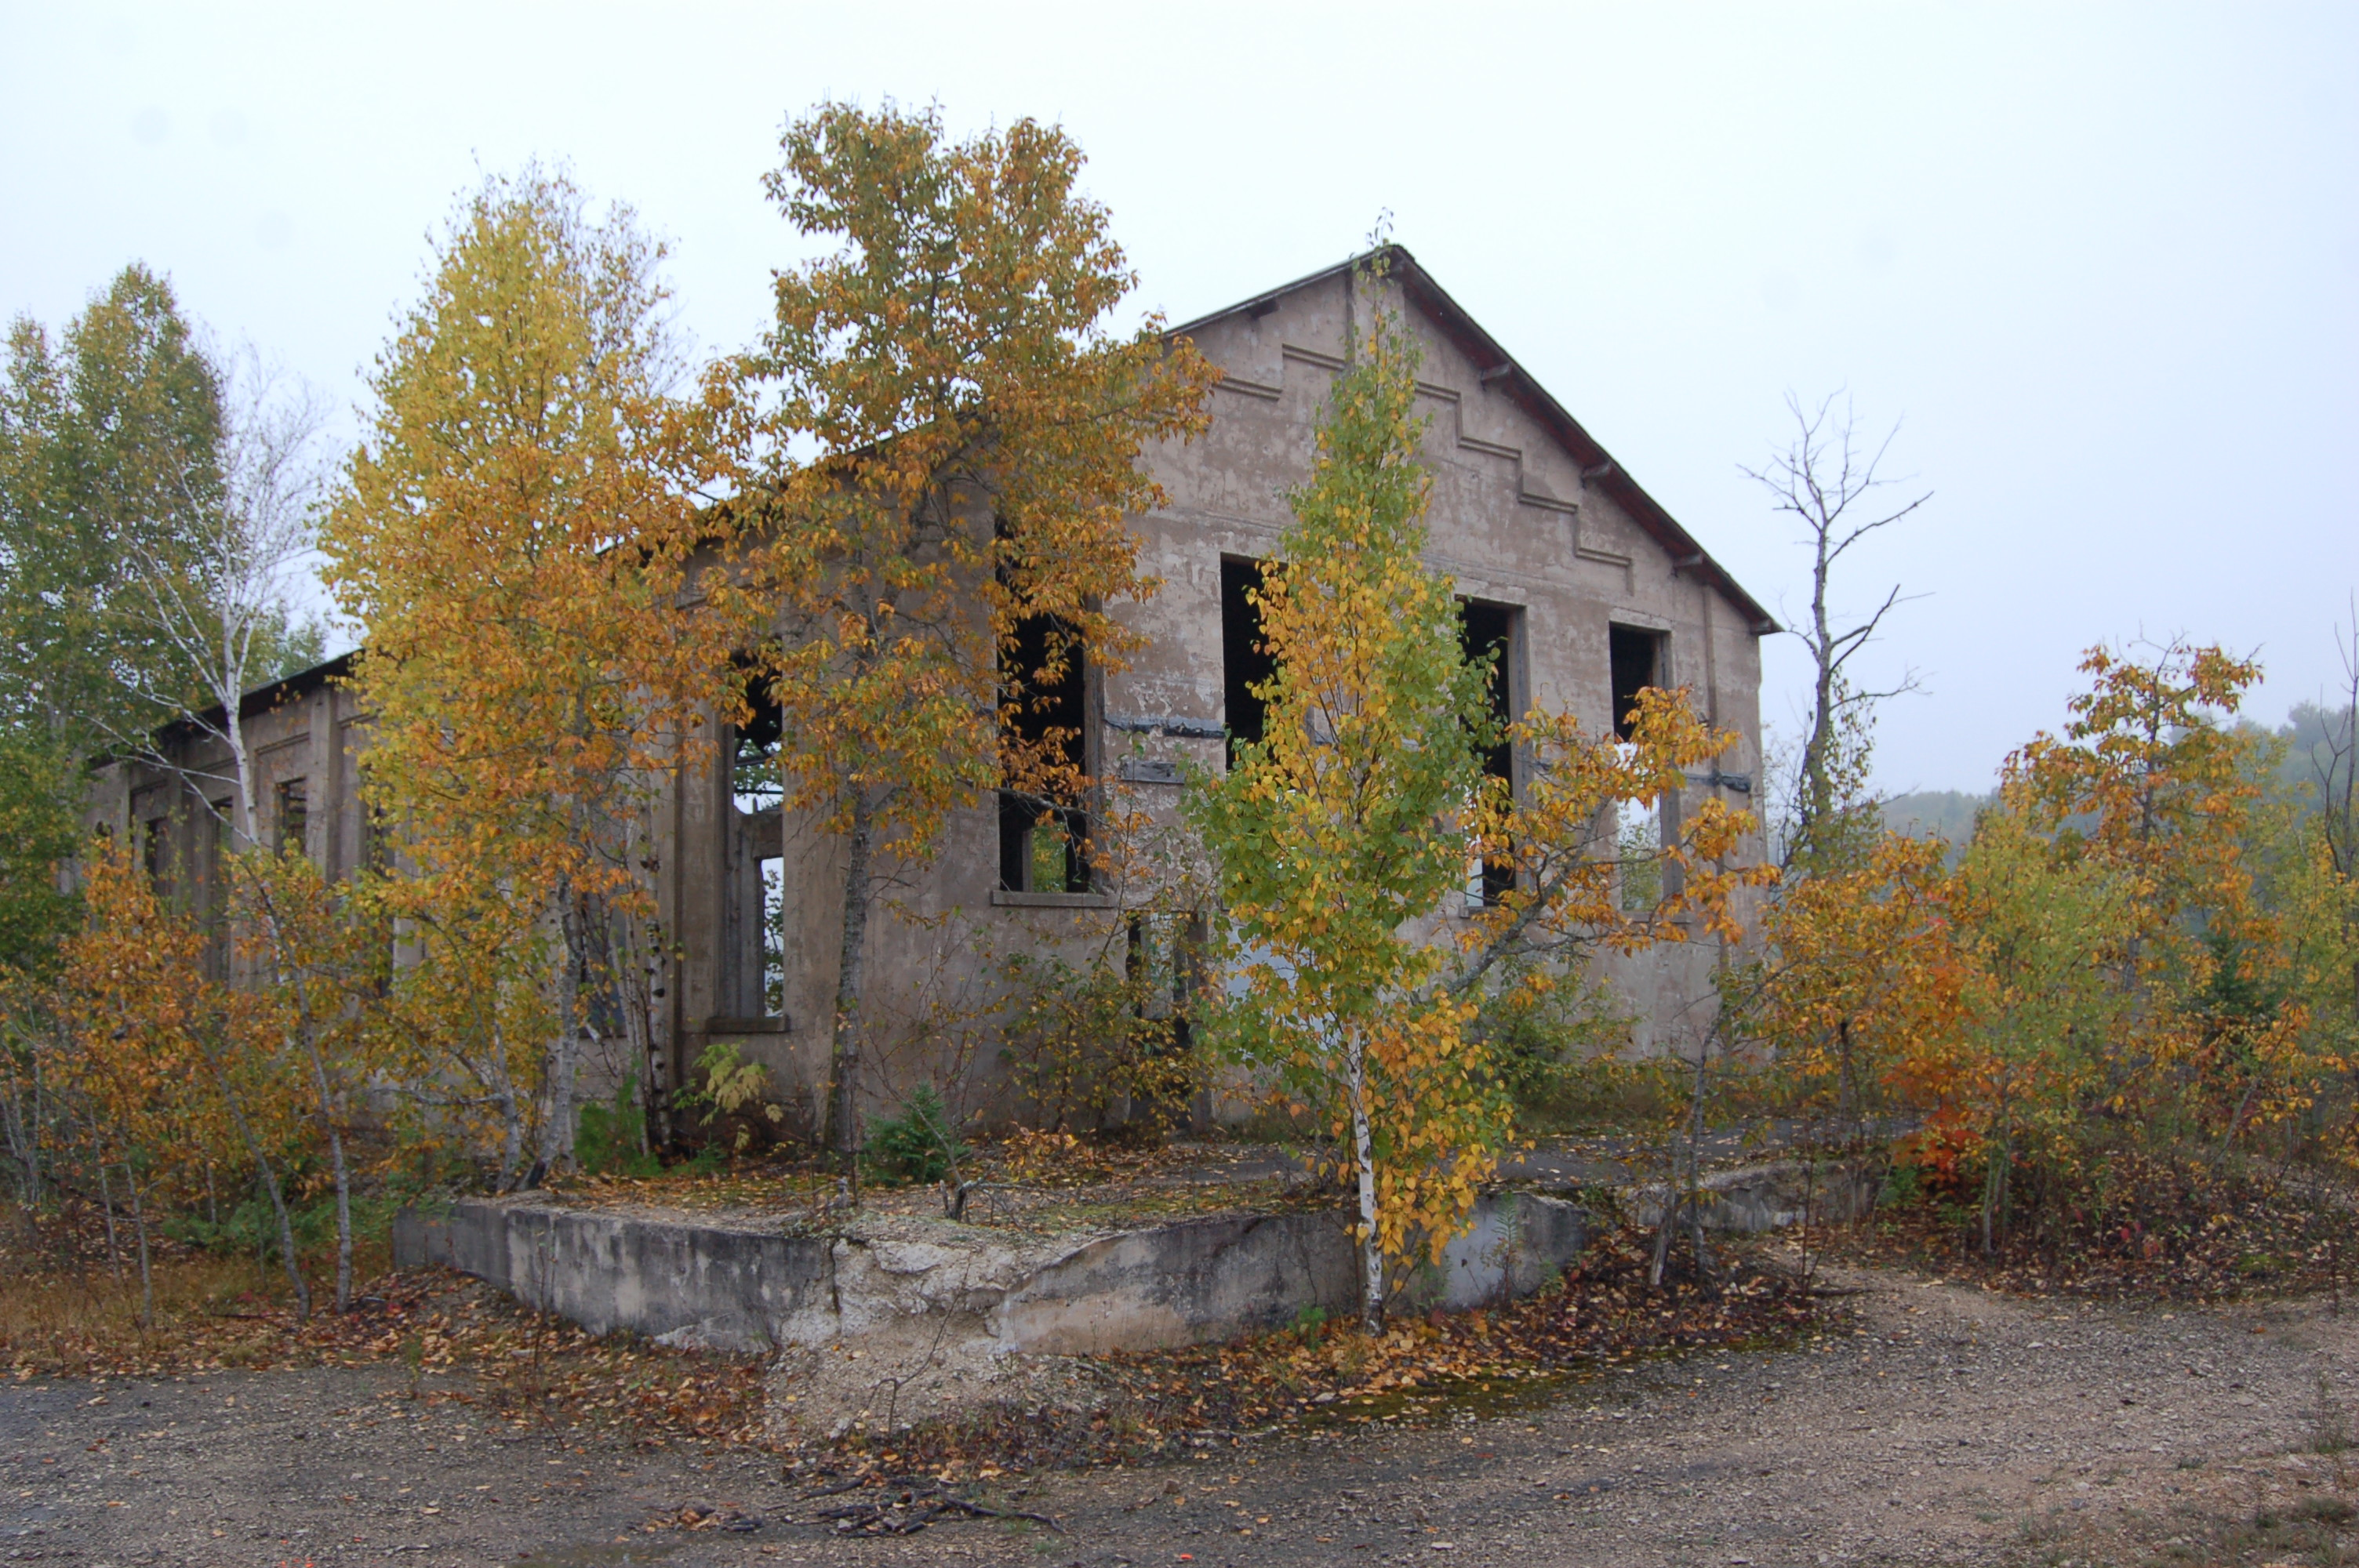 Fiborn Quarry An Upper Peninsula Quot Ghost Town Quot And Karst